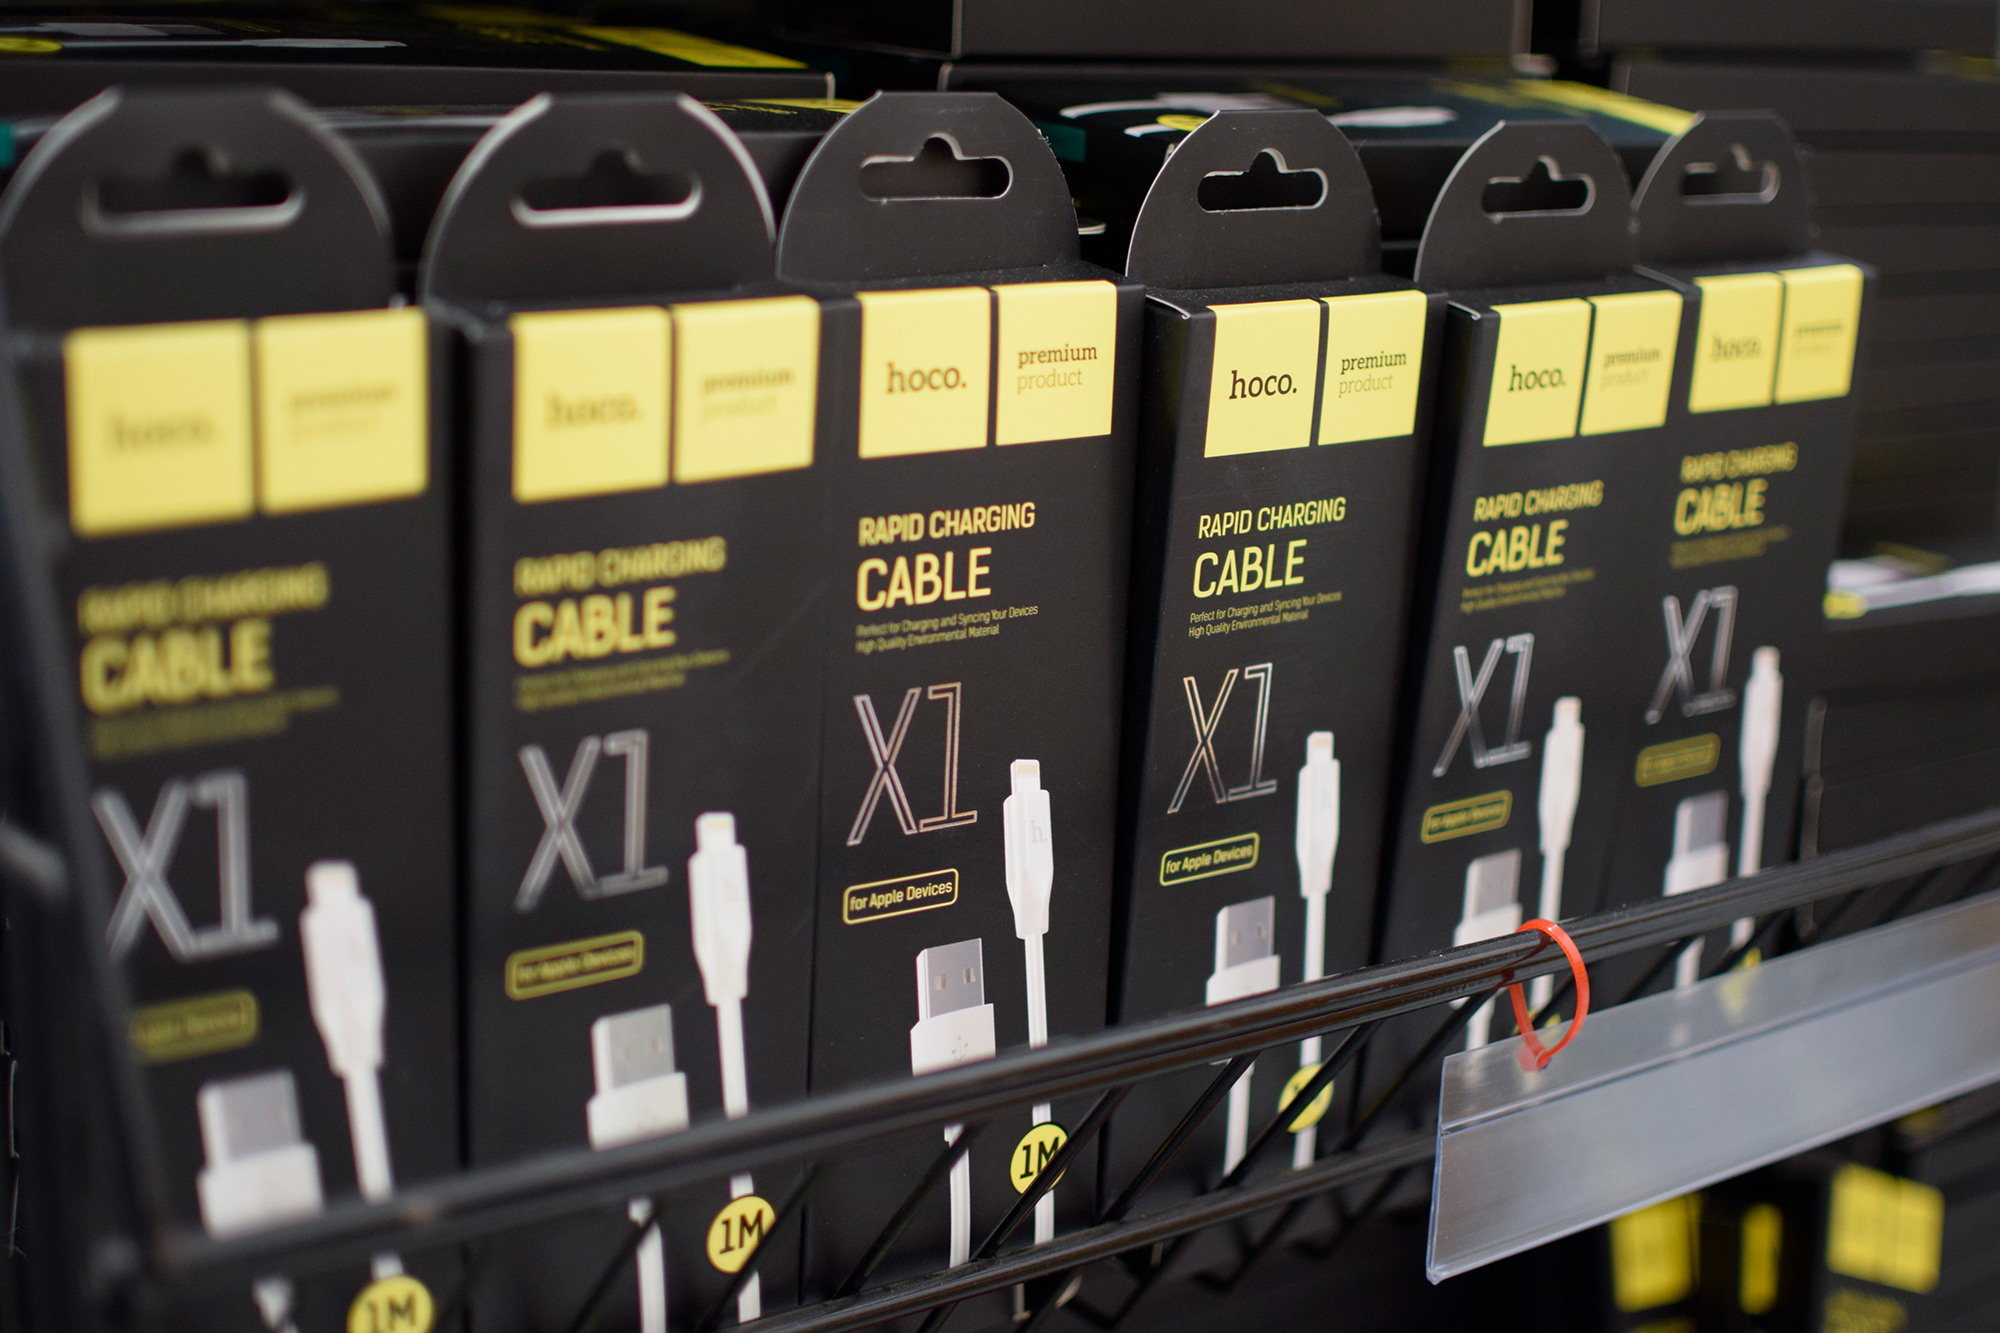 Rapid phone charging cables for sale